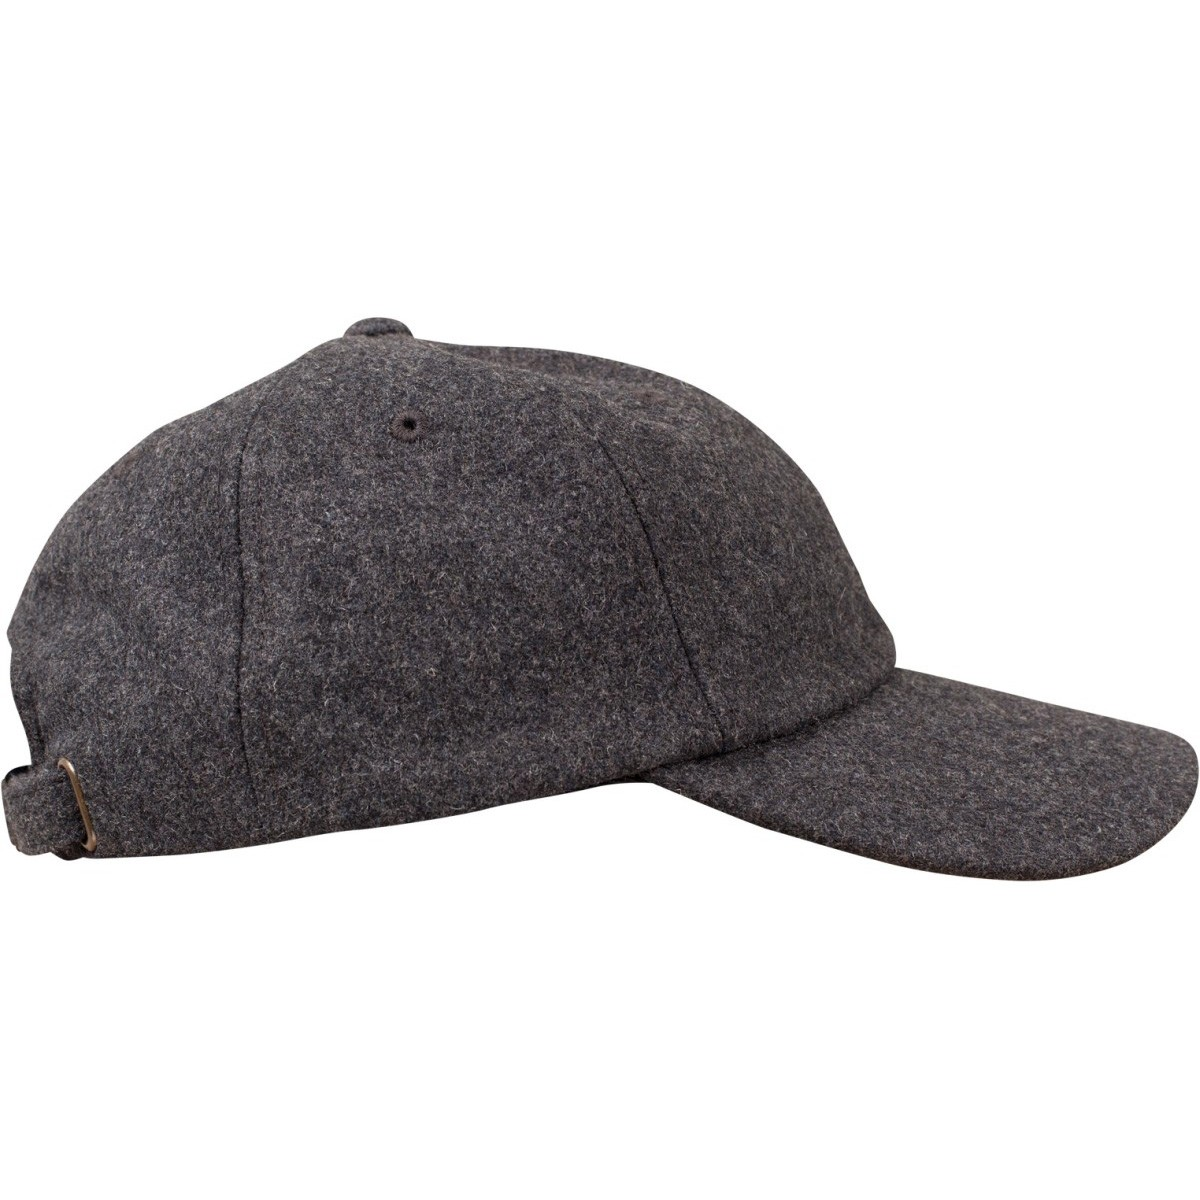 743bd0d4048fa Flexfit Low Profile Melton Wool Strapback Dad Cap - Grey. About this  product. Picture 1 of 5  Picture 2 of 5  Picture 3 of 5  Picture 4 of 5